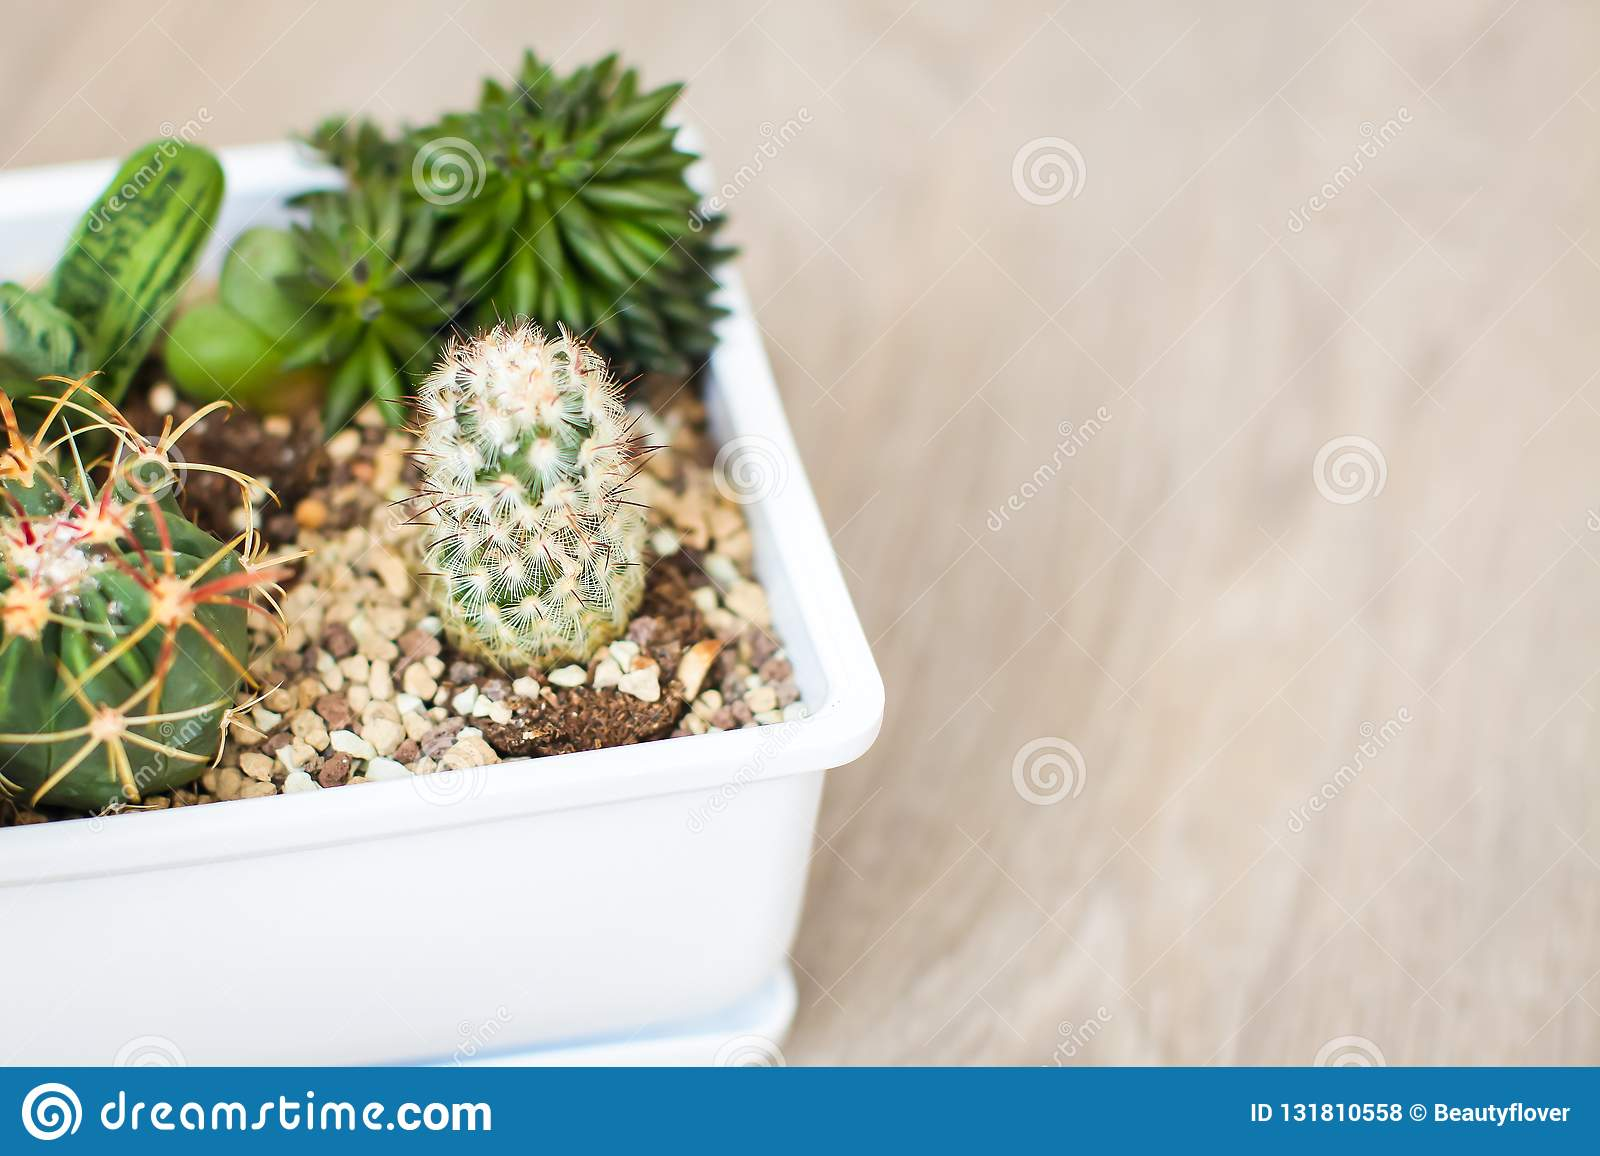 Top view house plants with cactus and succulents in white pot unique indoor plant decor